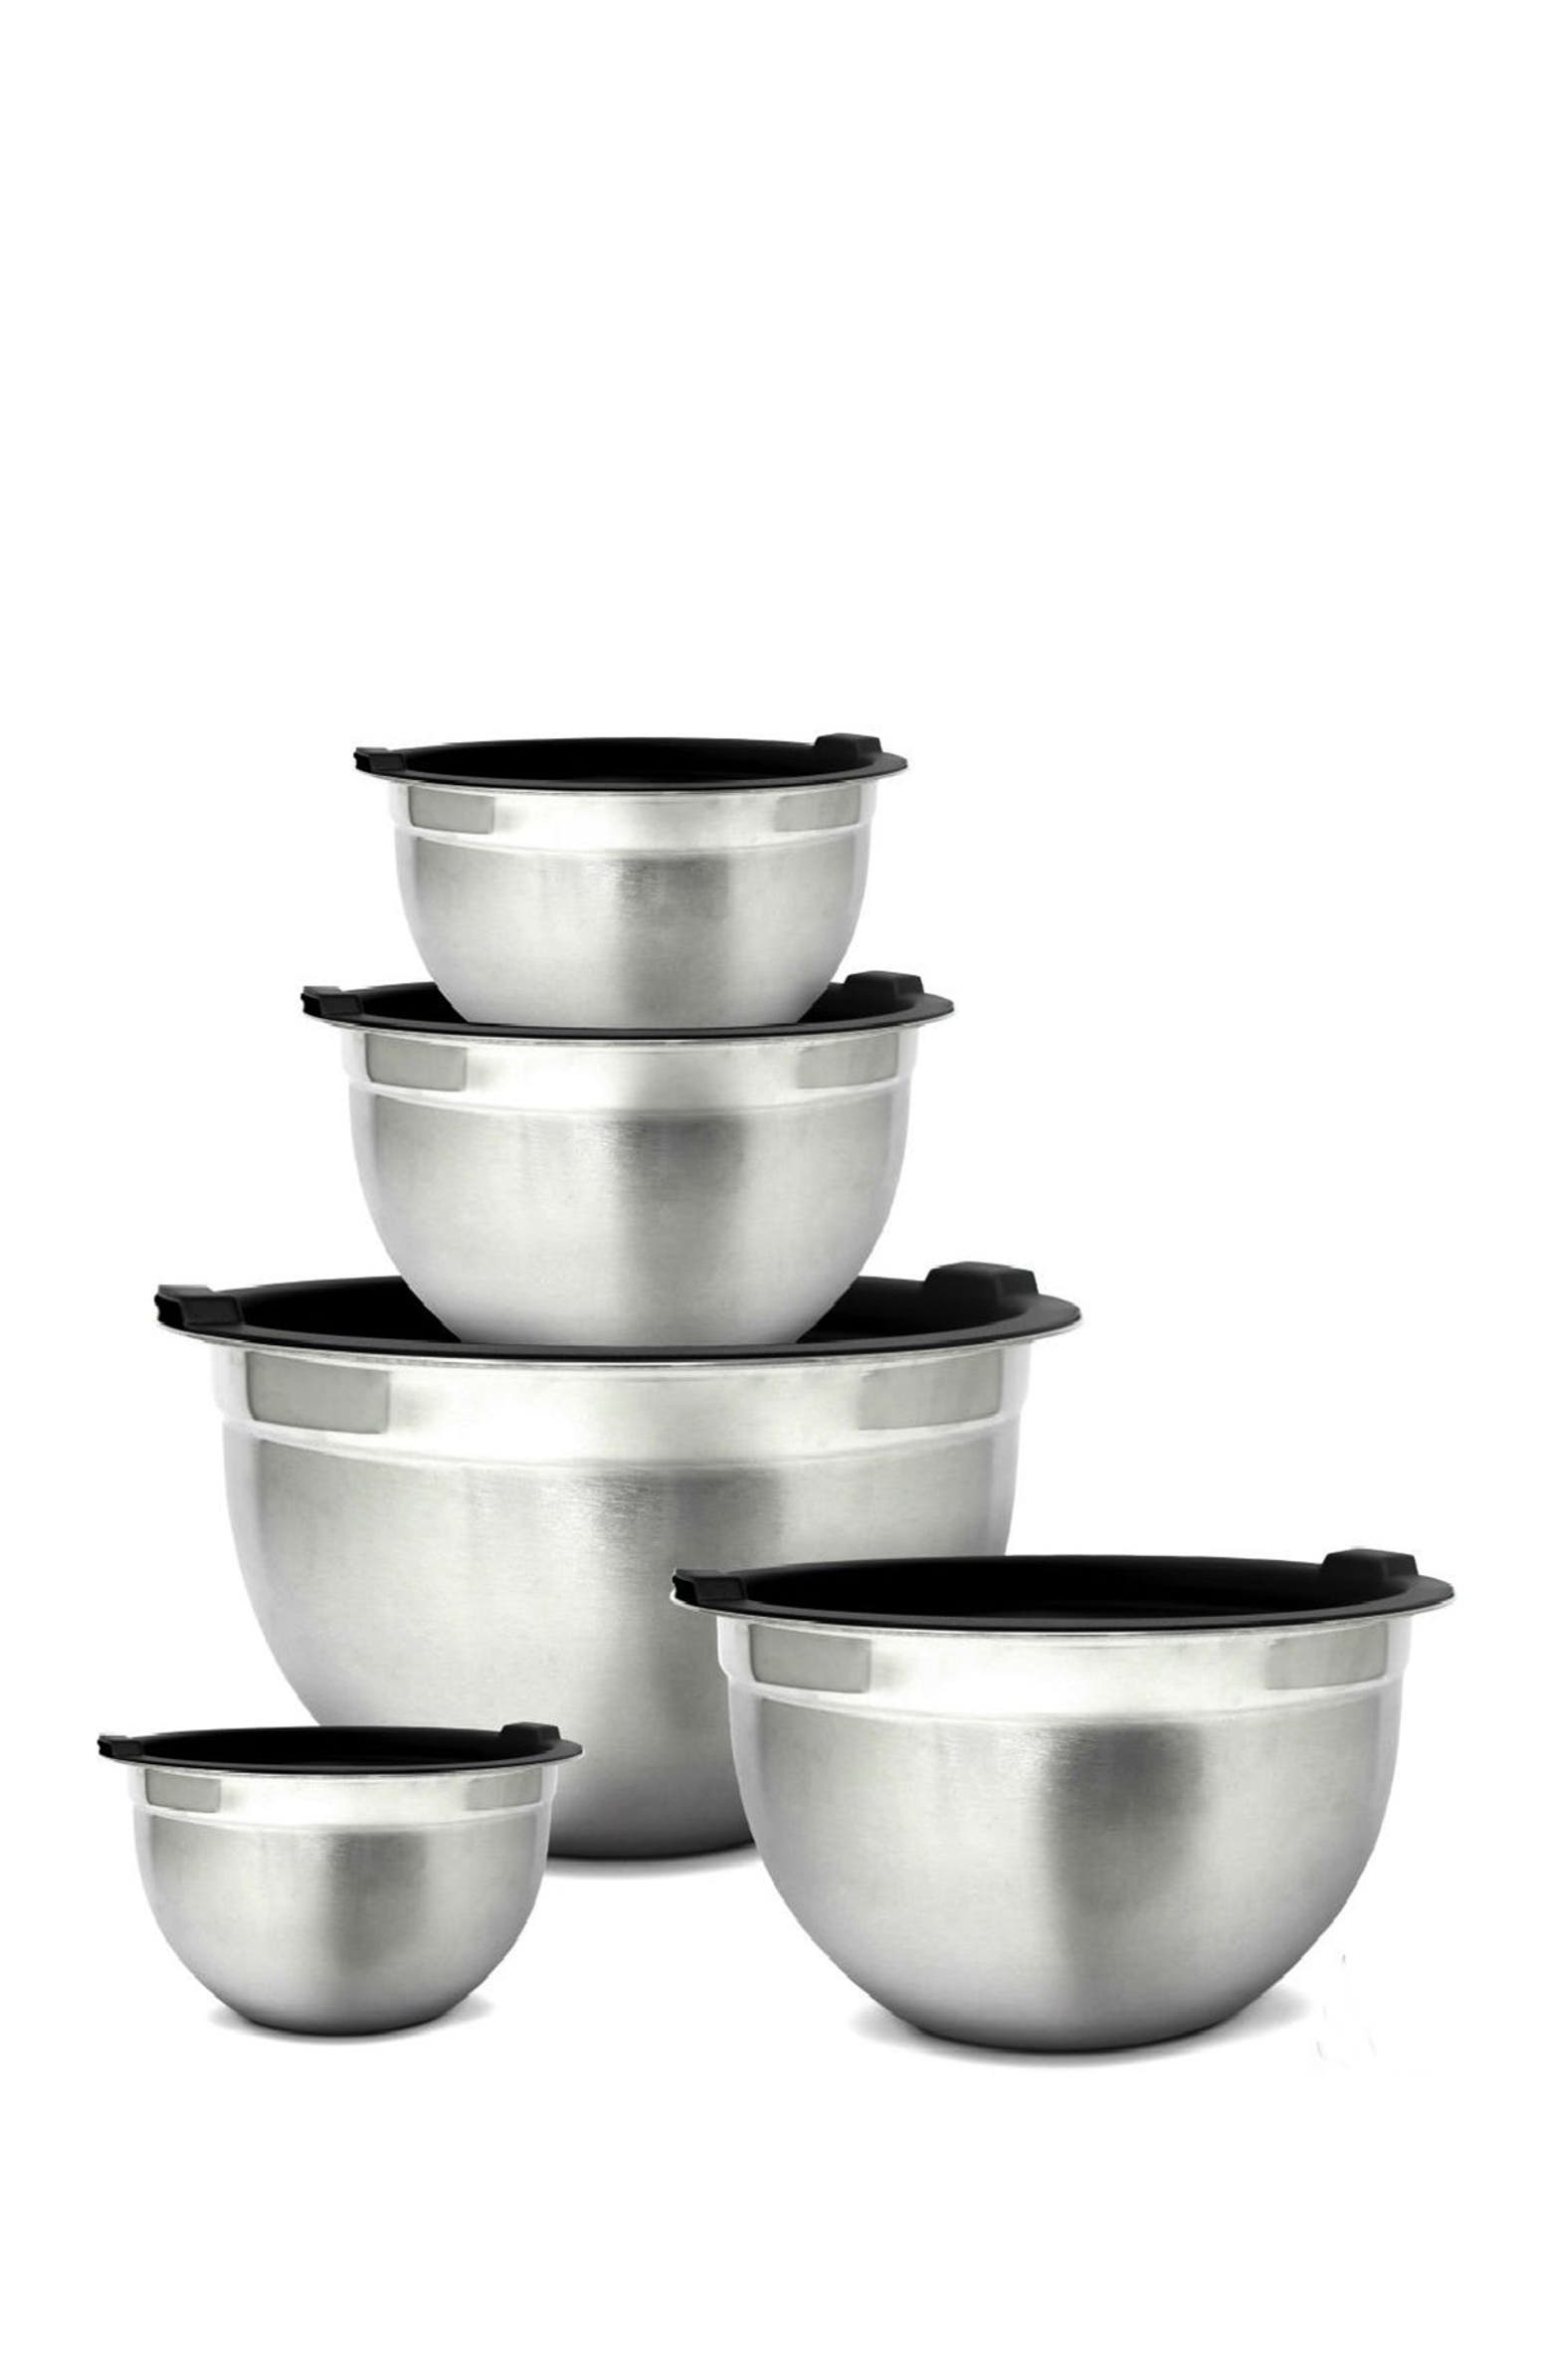 Stainless Steel Mixing Bowls and Airtight Lids – Set of 5! .97 (REG: .00) at Nordstrom Rack!